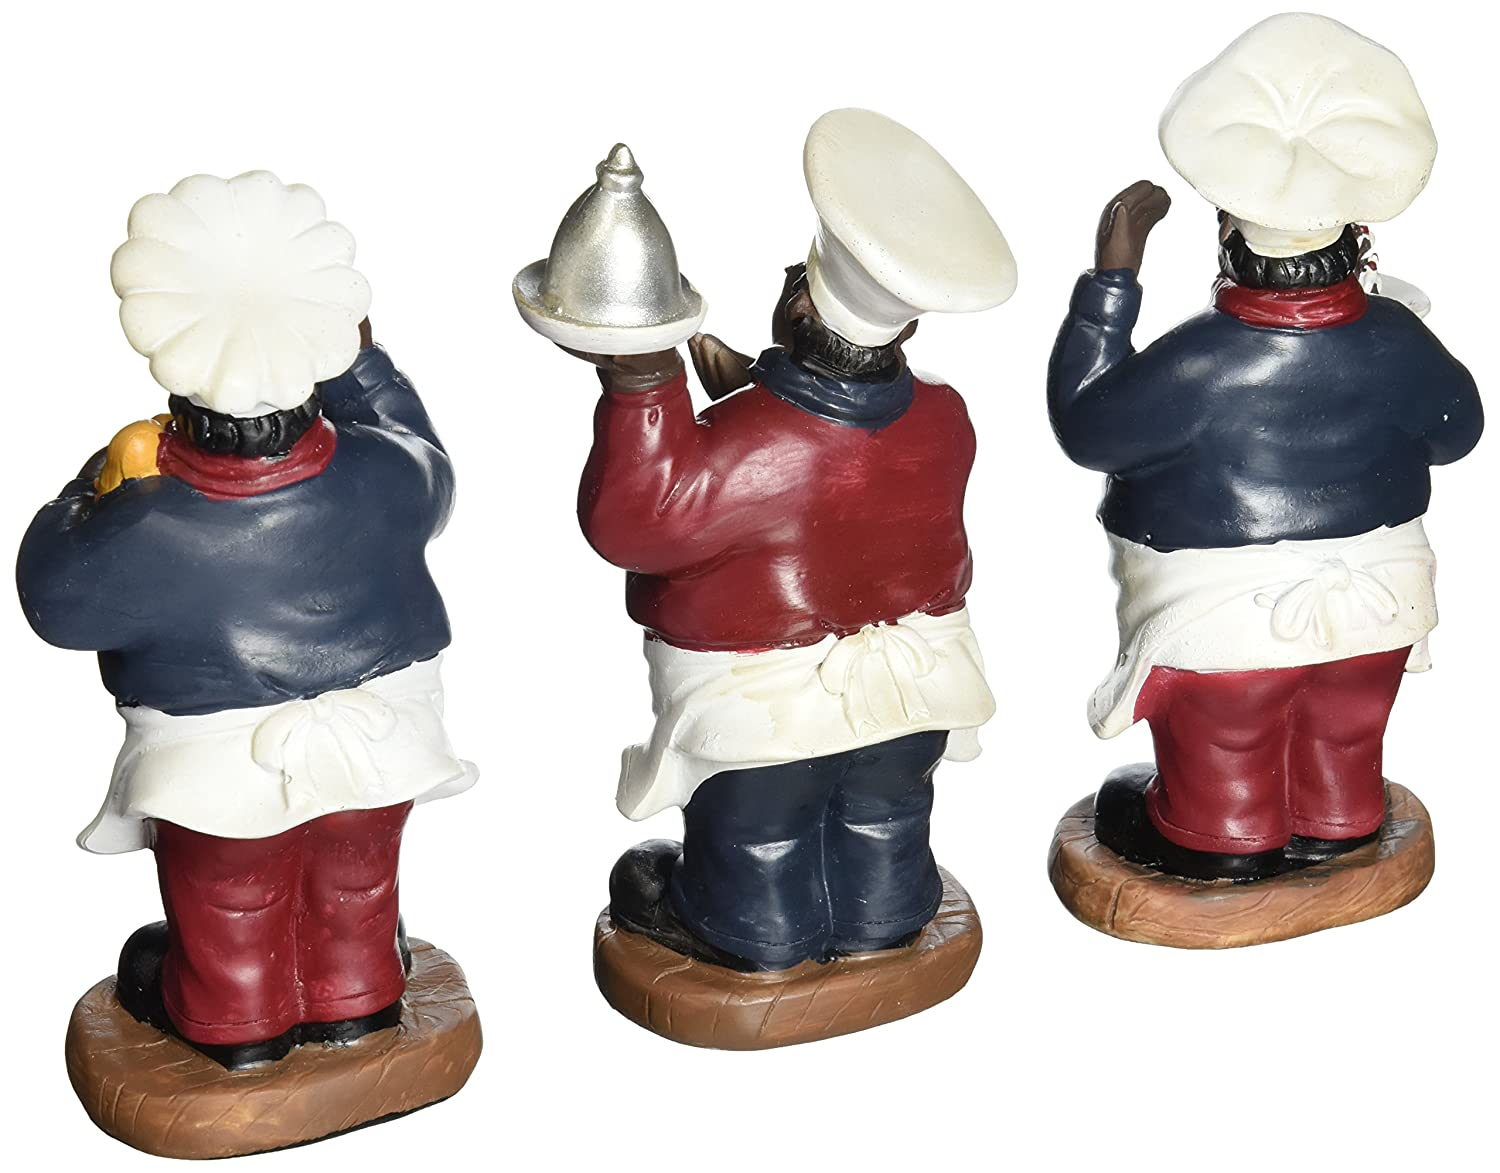 Amazon.com: Fat Chef Kitchen Statue Set of 3 African Americans Table ...